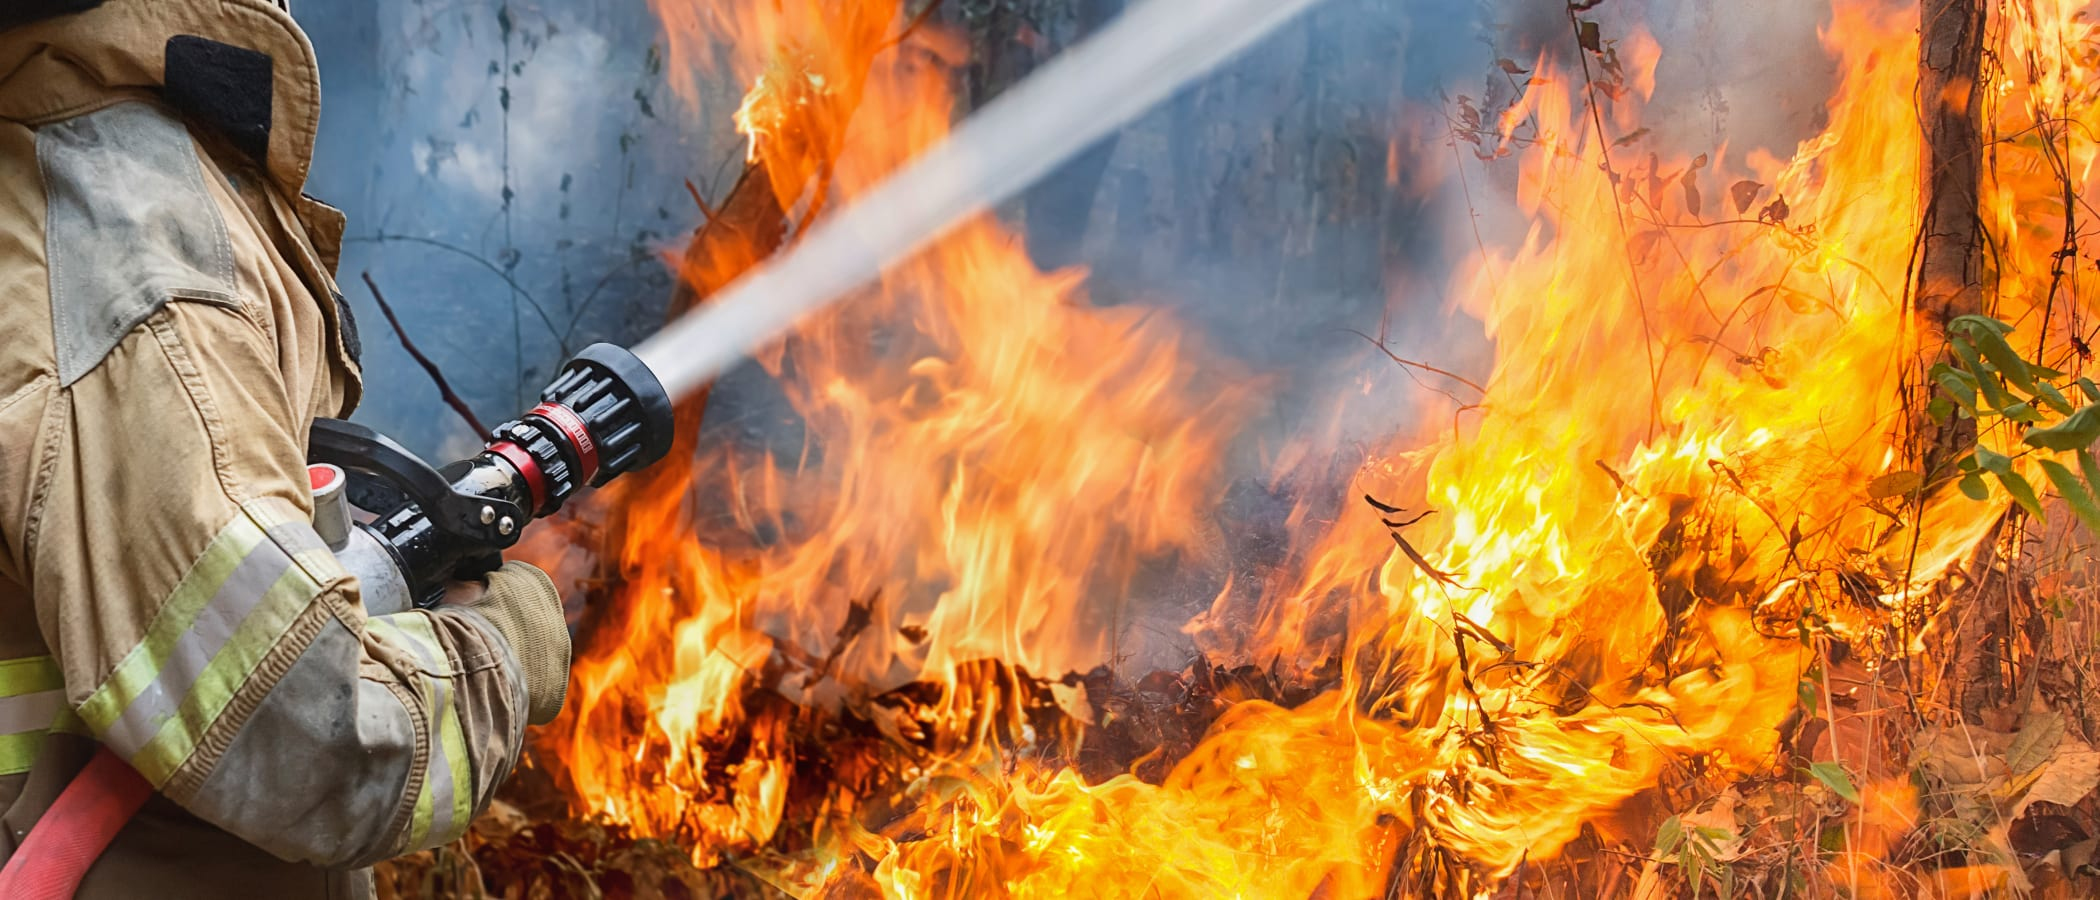 Tips for Complying with California Employment Laws During the Wildfires